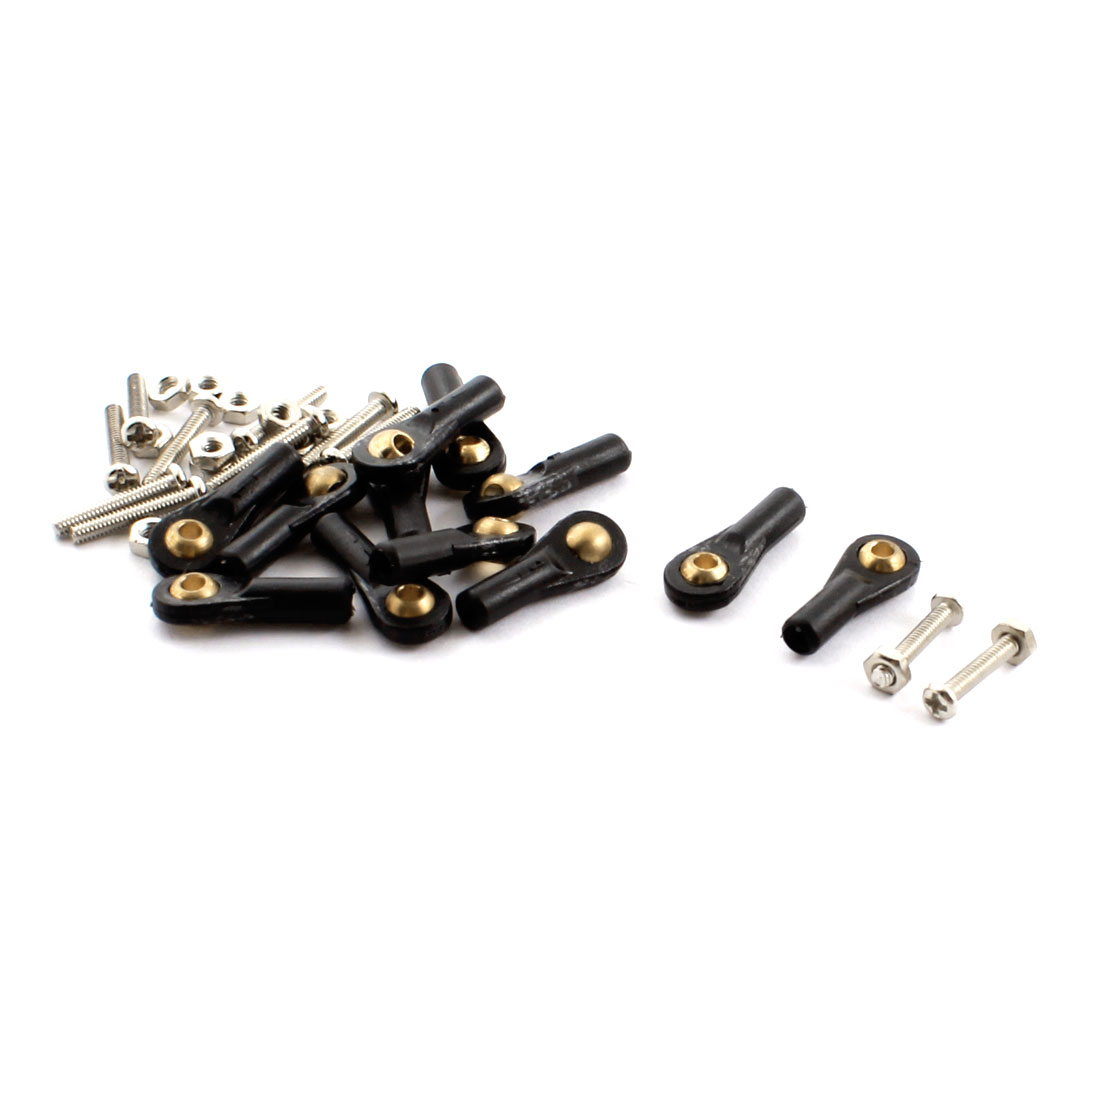 12Pcs RC Car Boat Black 2X18X2mm Rod End Metal Ball Head Buckle Joints Set w Screws